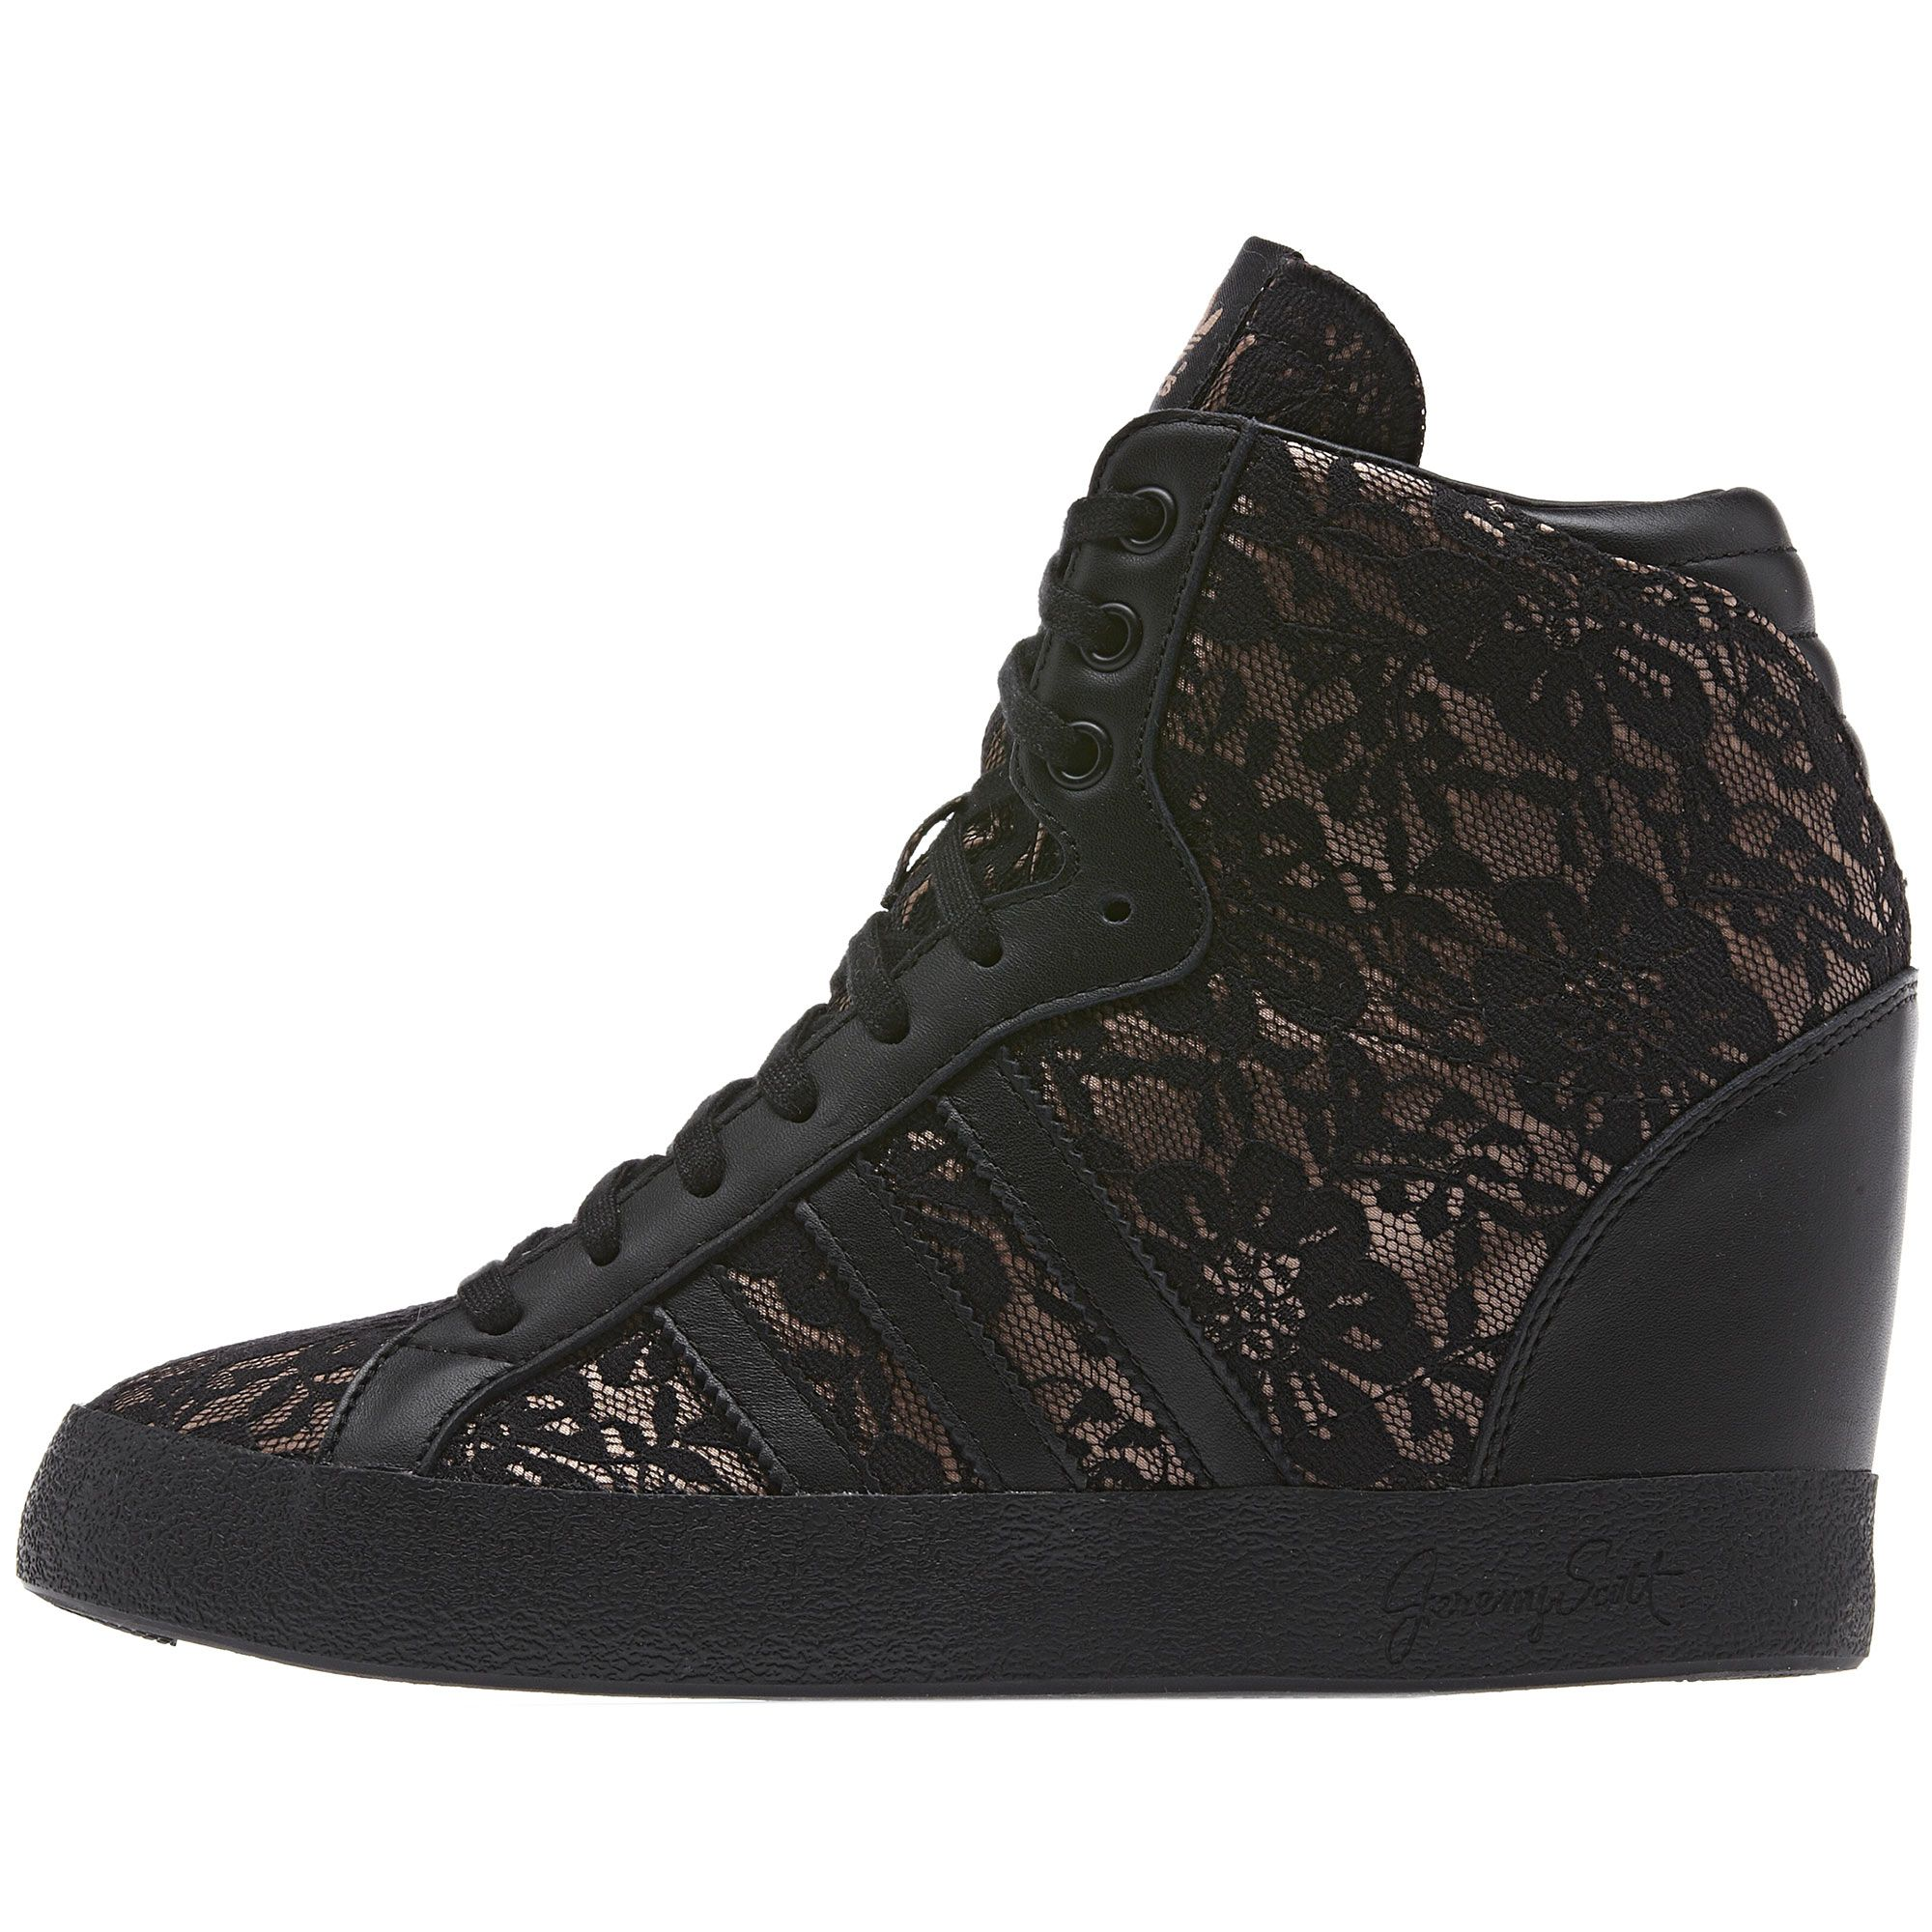 Wedge Jeremy AdidasChaussures Profi Lace Sneakers Signée Scott bY6gfy7v